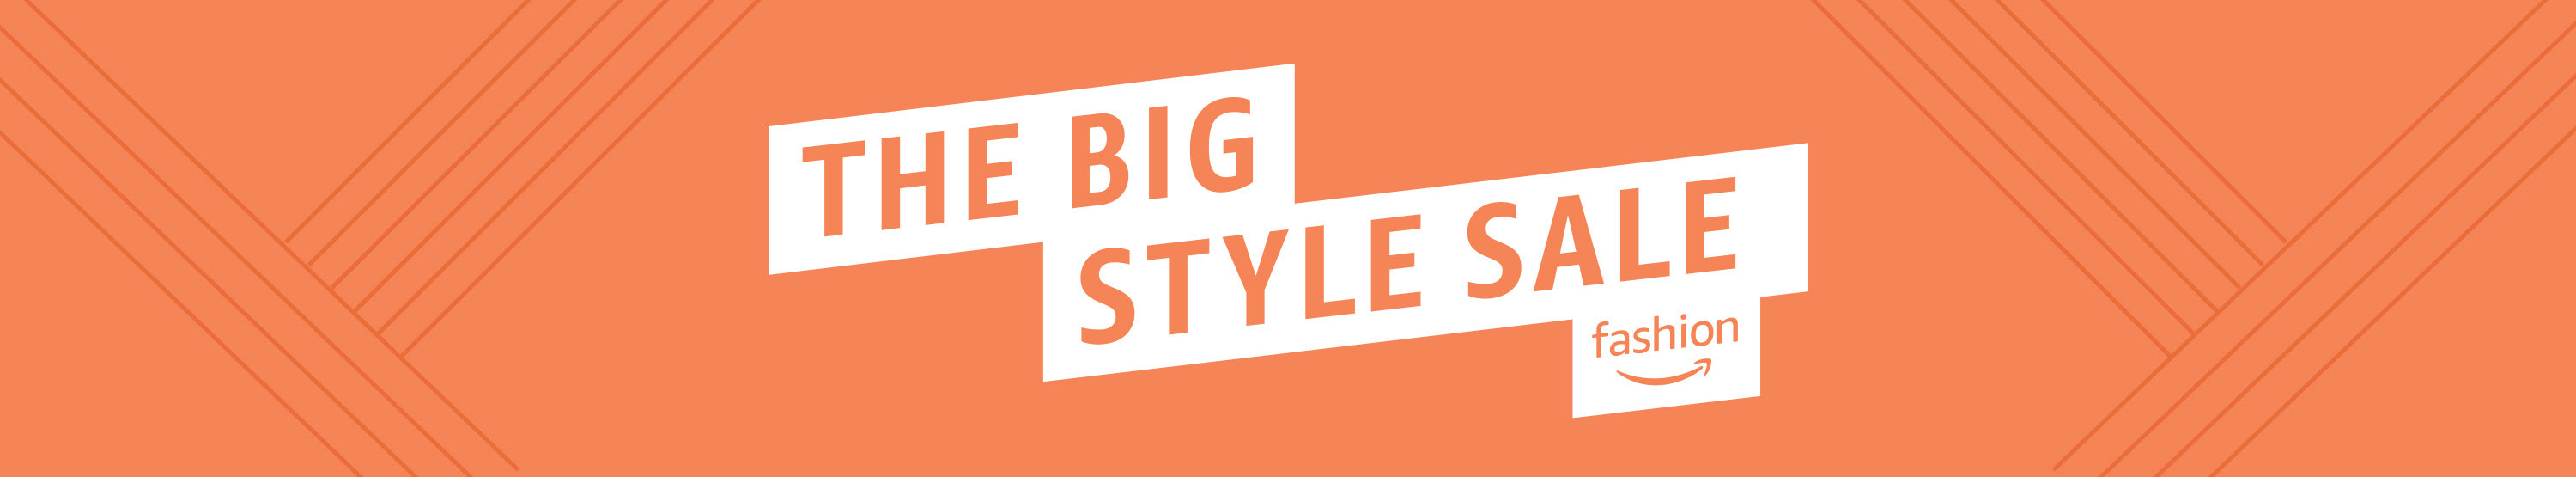 """The Big Style Sale"" on an orange background"